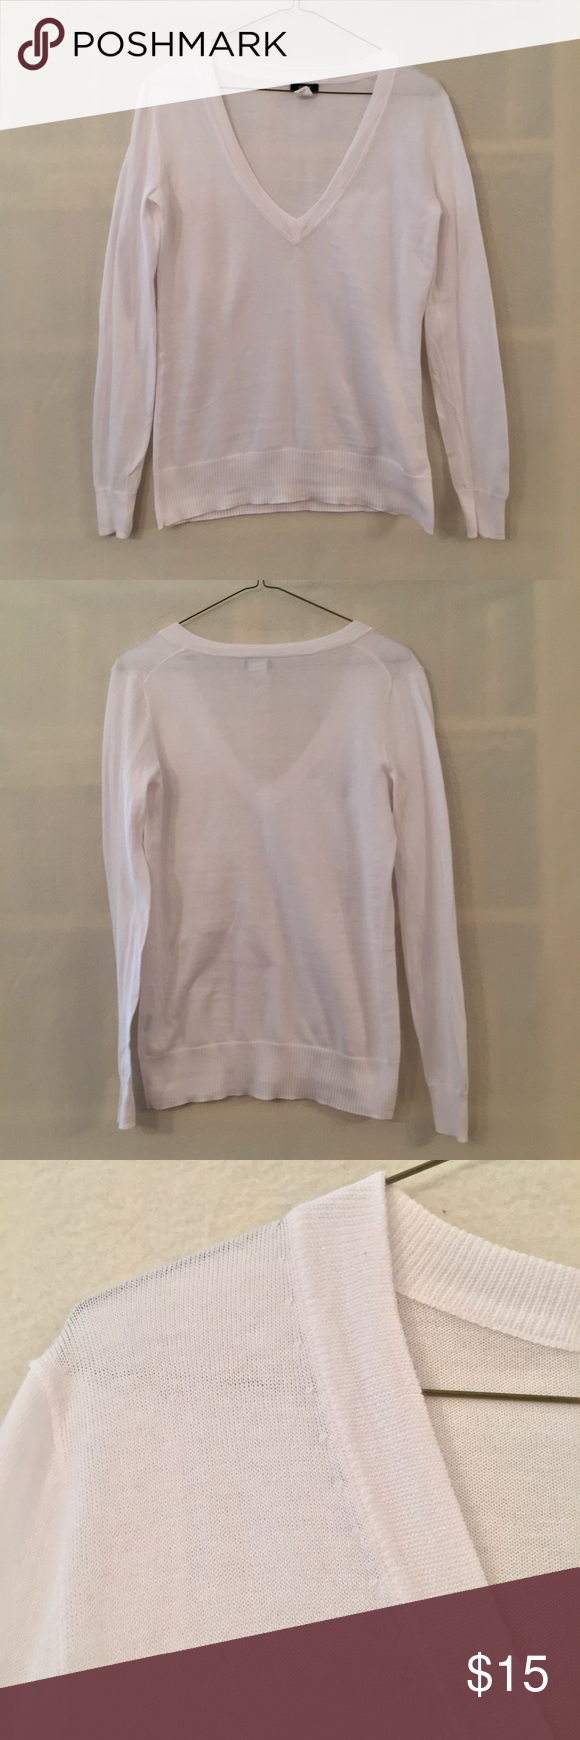 J. Crew white cotton v-neck sweater | White cotton, Cotton sweater ...